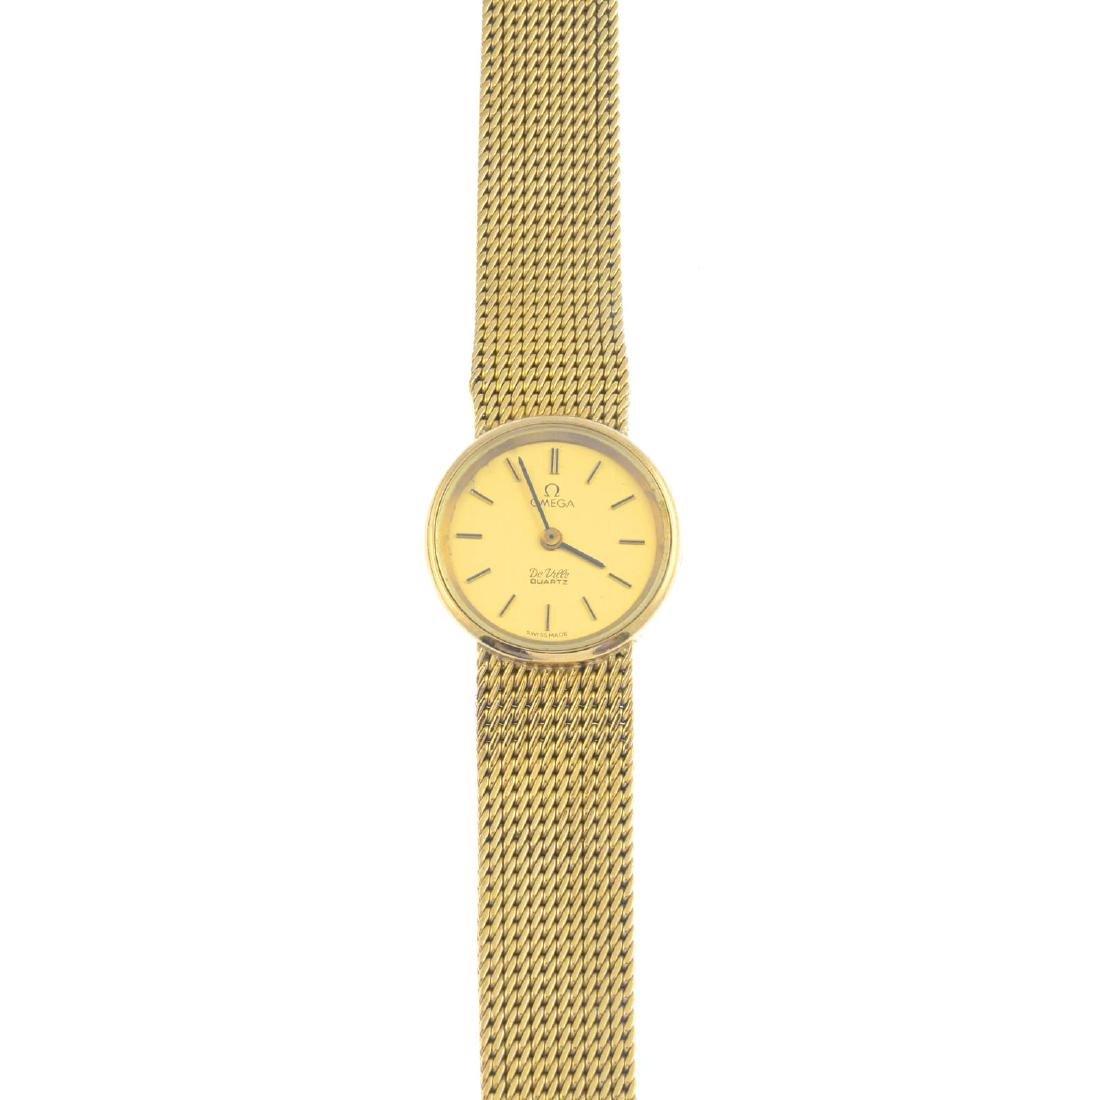 OMEGA - a lady's wrist watch. The circular dial with